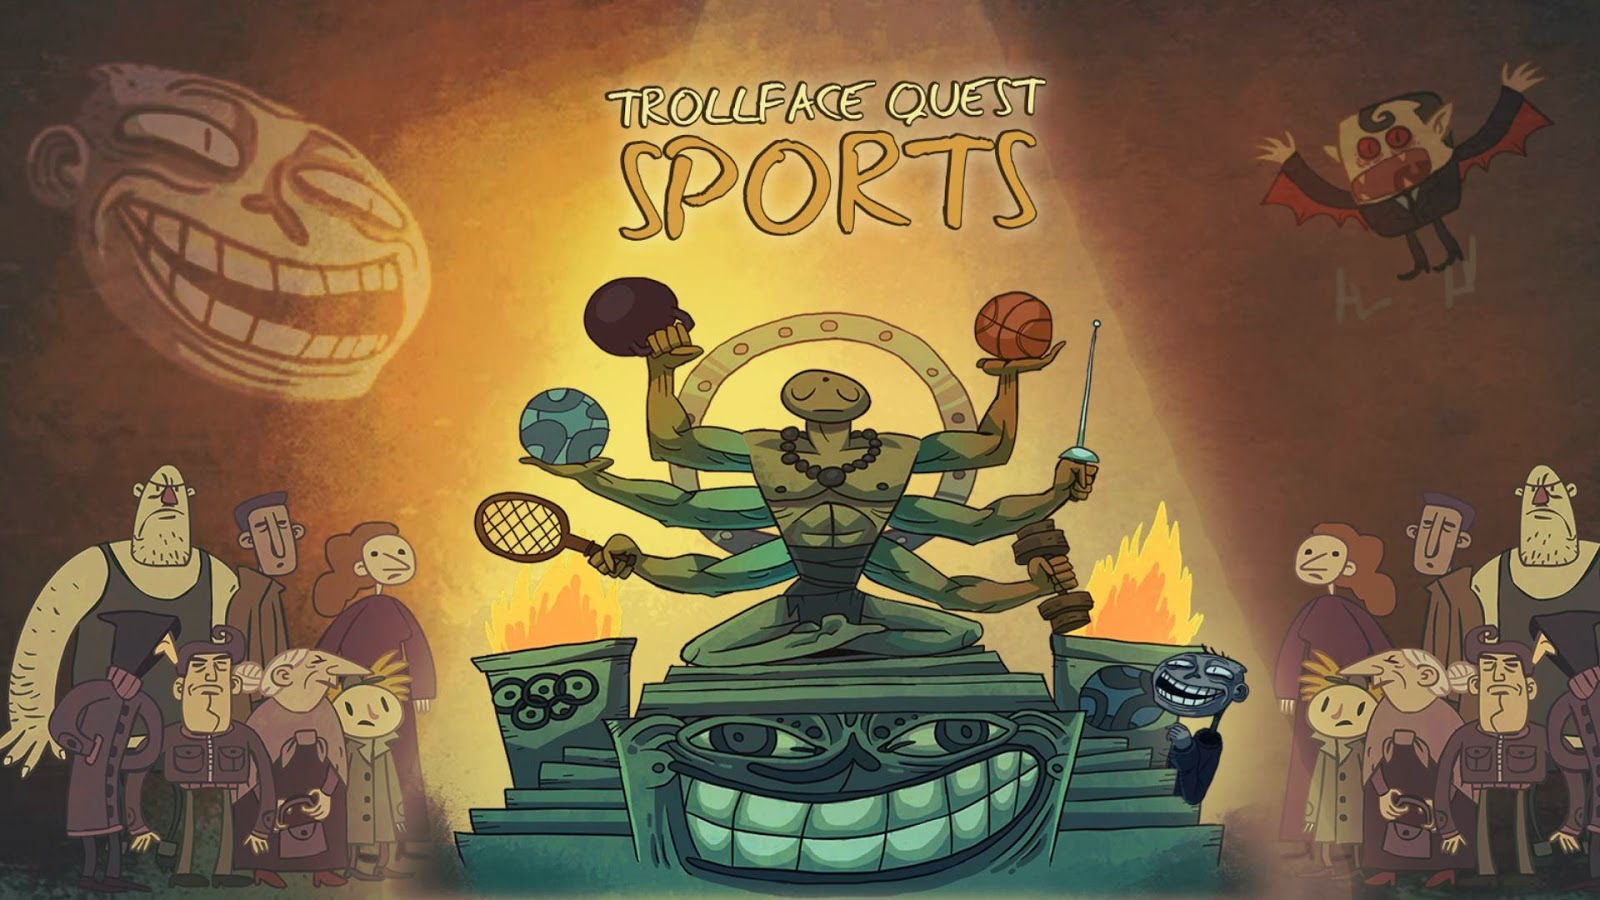 Trollface Quest Sports Android app Walkthrough